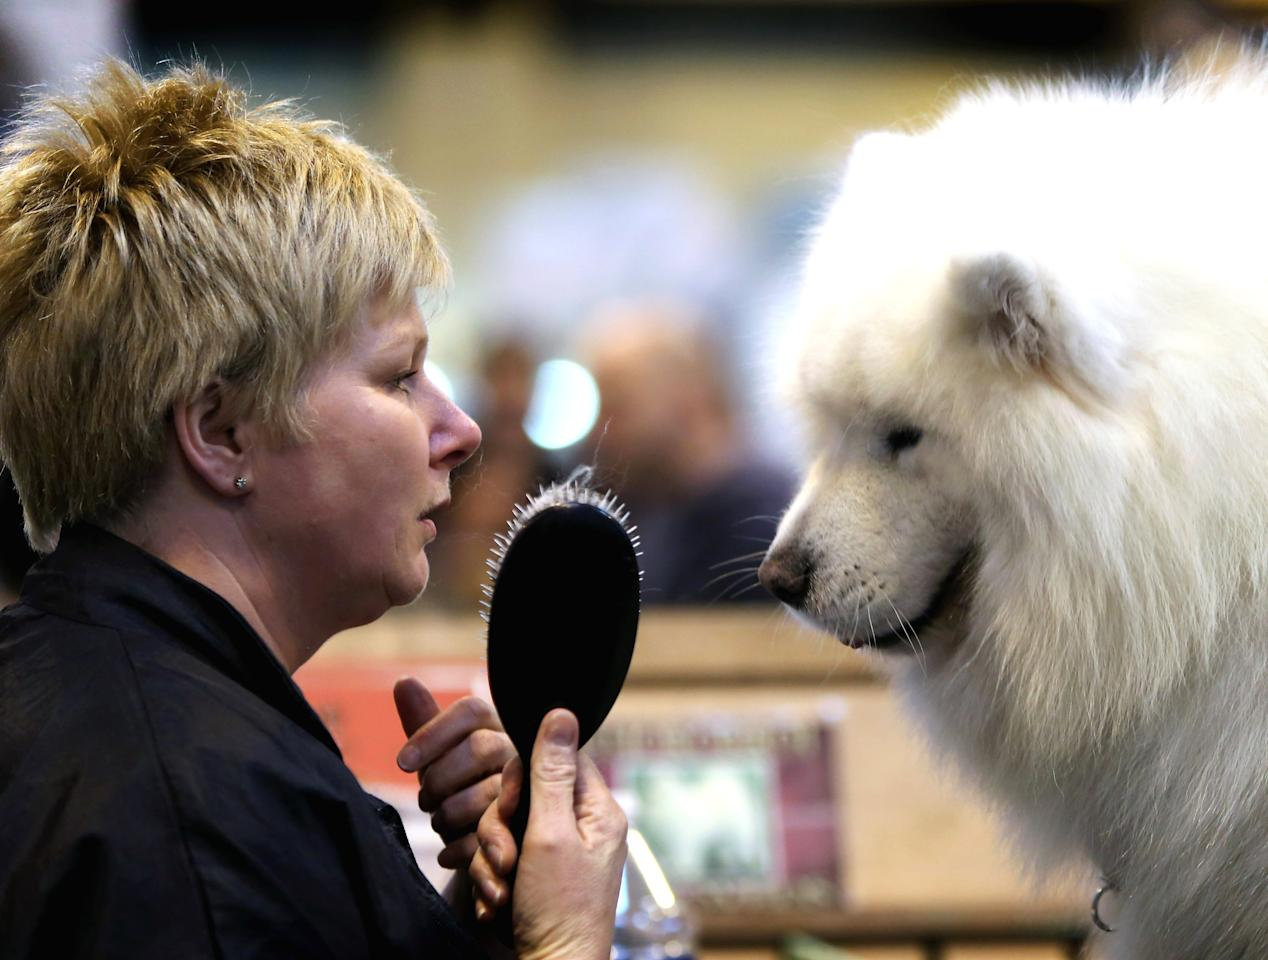 BIRMINGHAM, ENGLAND - MARCH 10:  Tracey Elder from Fyfe grooms her Samoyed Bolan during the final day at Crufts Dog Show on March 10, 2013 in Birmingham, England. During this year's four-day competition over 22,000 dogs and their owners will vie for a variety of accolades but ultimately seeking the coveted 'Best In Show'.  (Photo by Rosie Hallam/Getty Images)